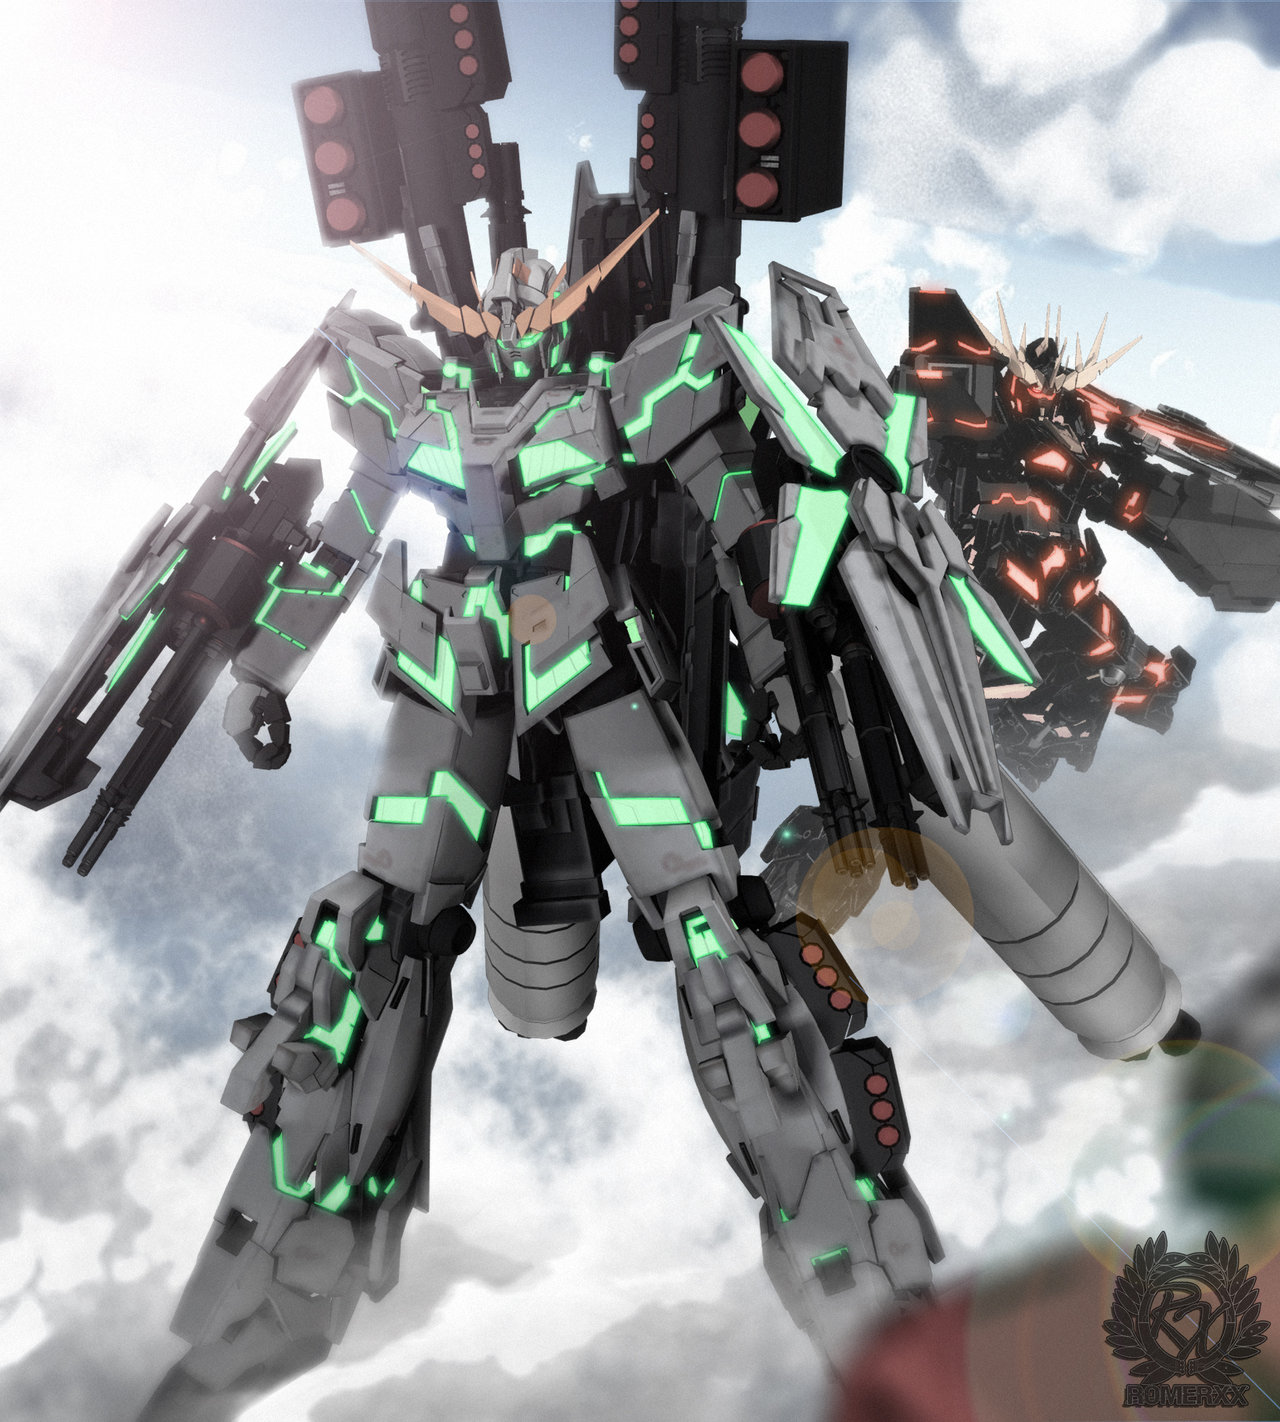 Full Armor Gundam Unicorn and Banshee CG Wallpaper ...